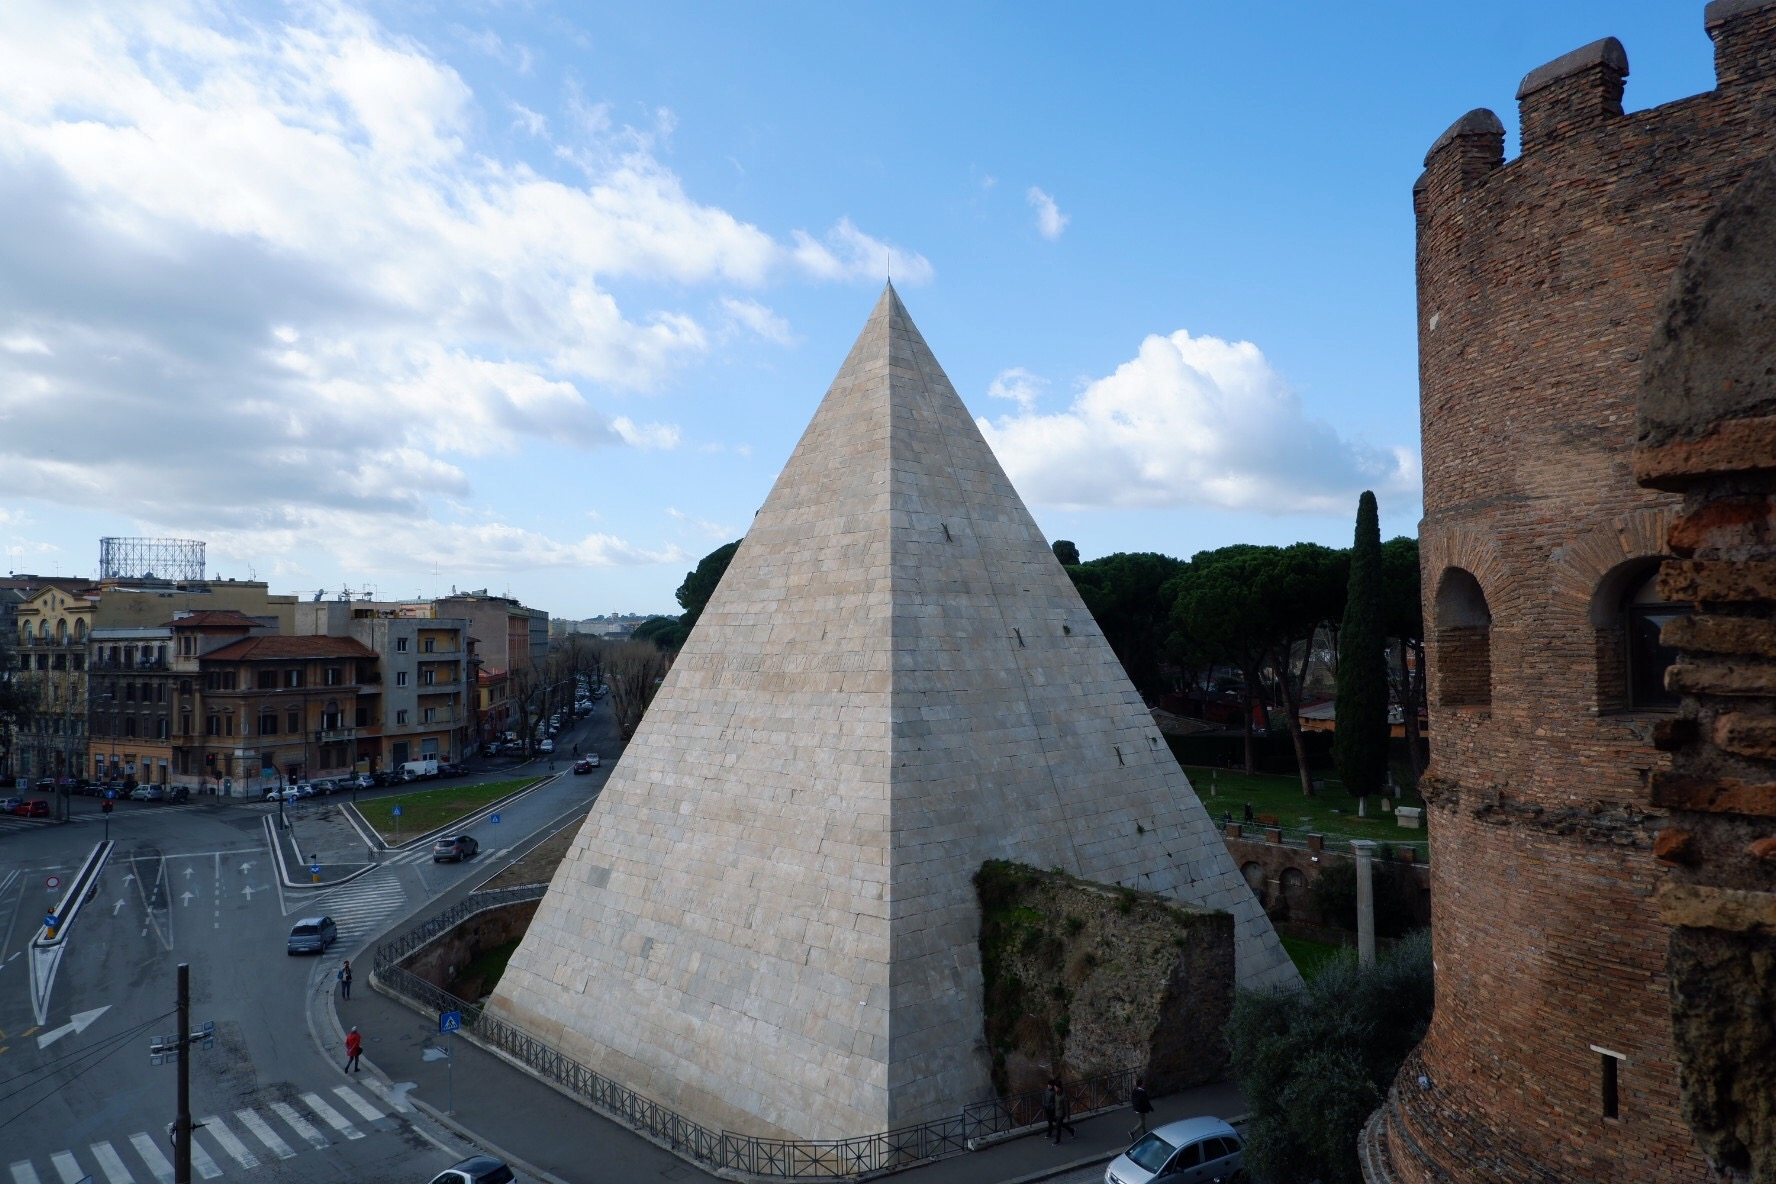 Piramide Ostiense seen from Porta San Paolo